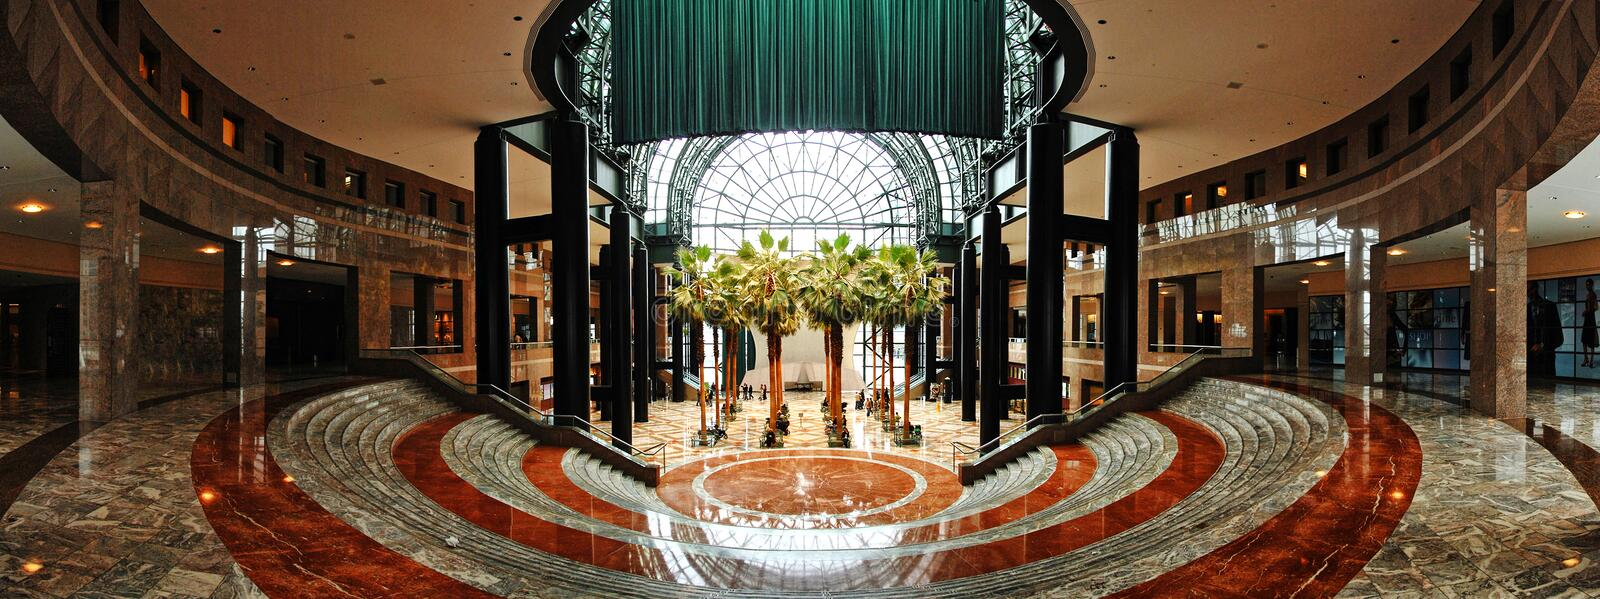 Winter Garden Atrium Panorama - New York City royalty free stock images